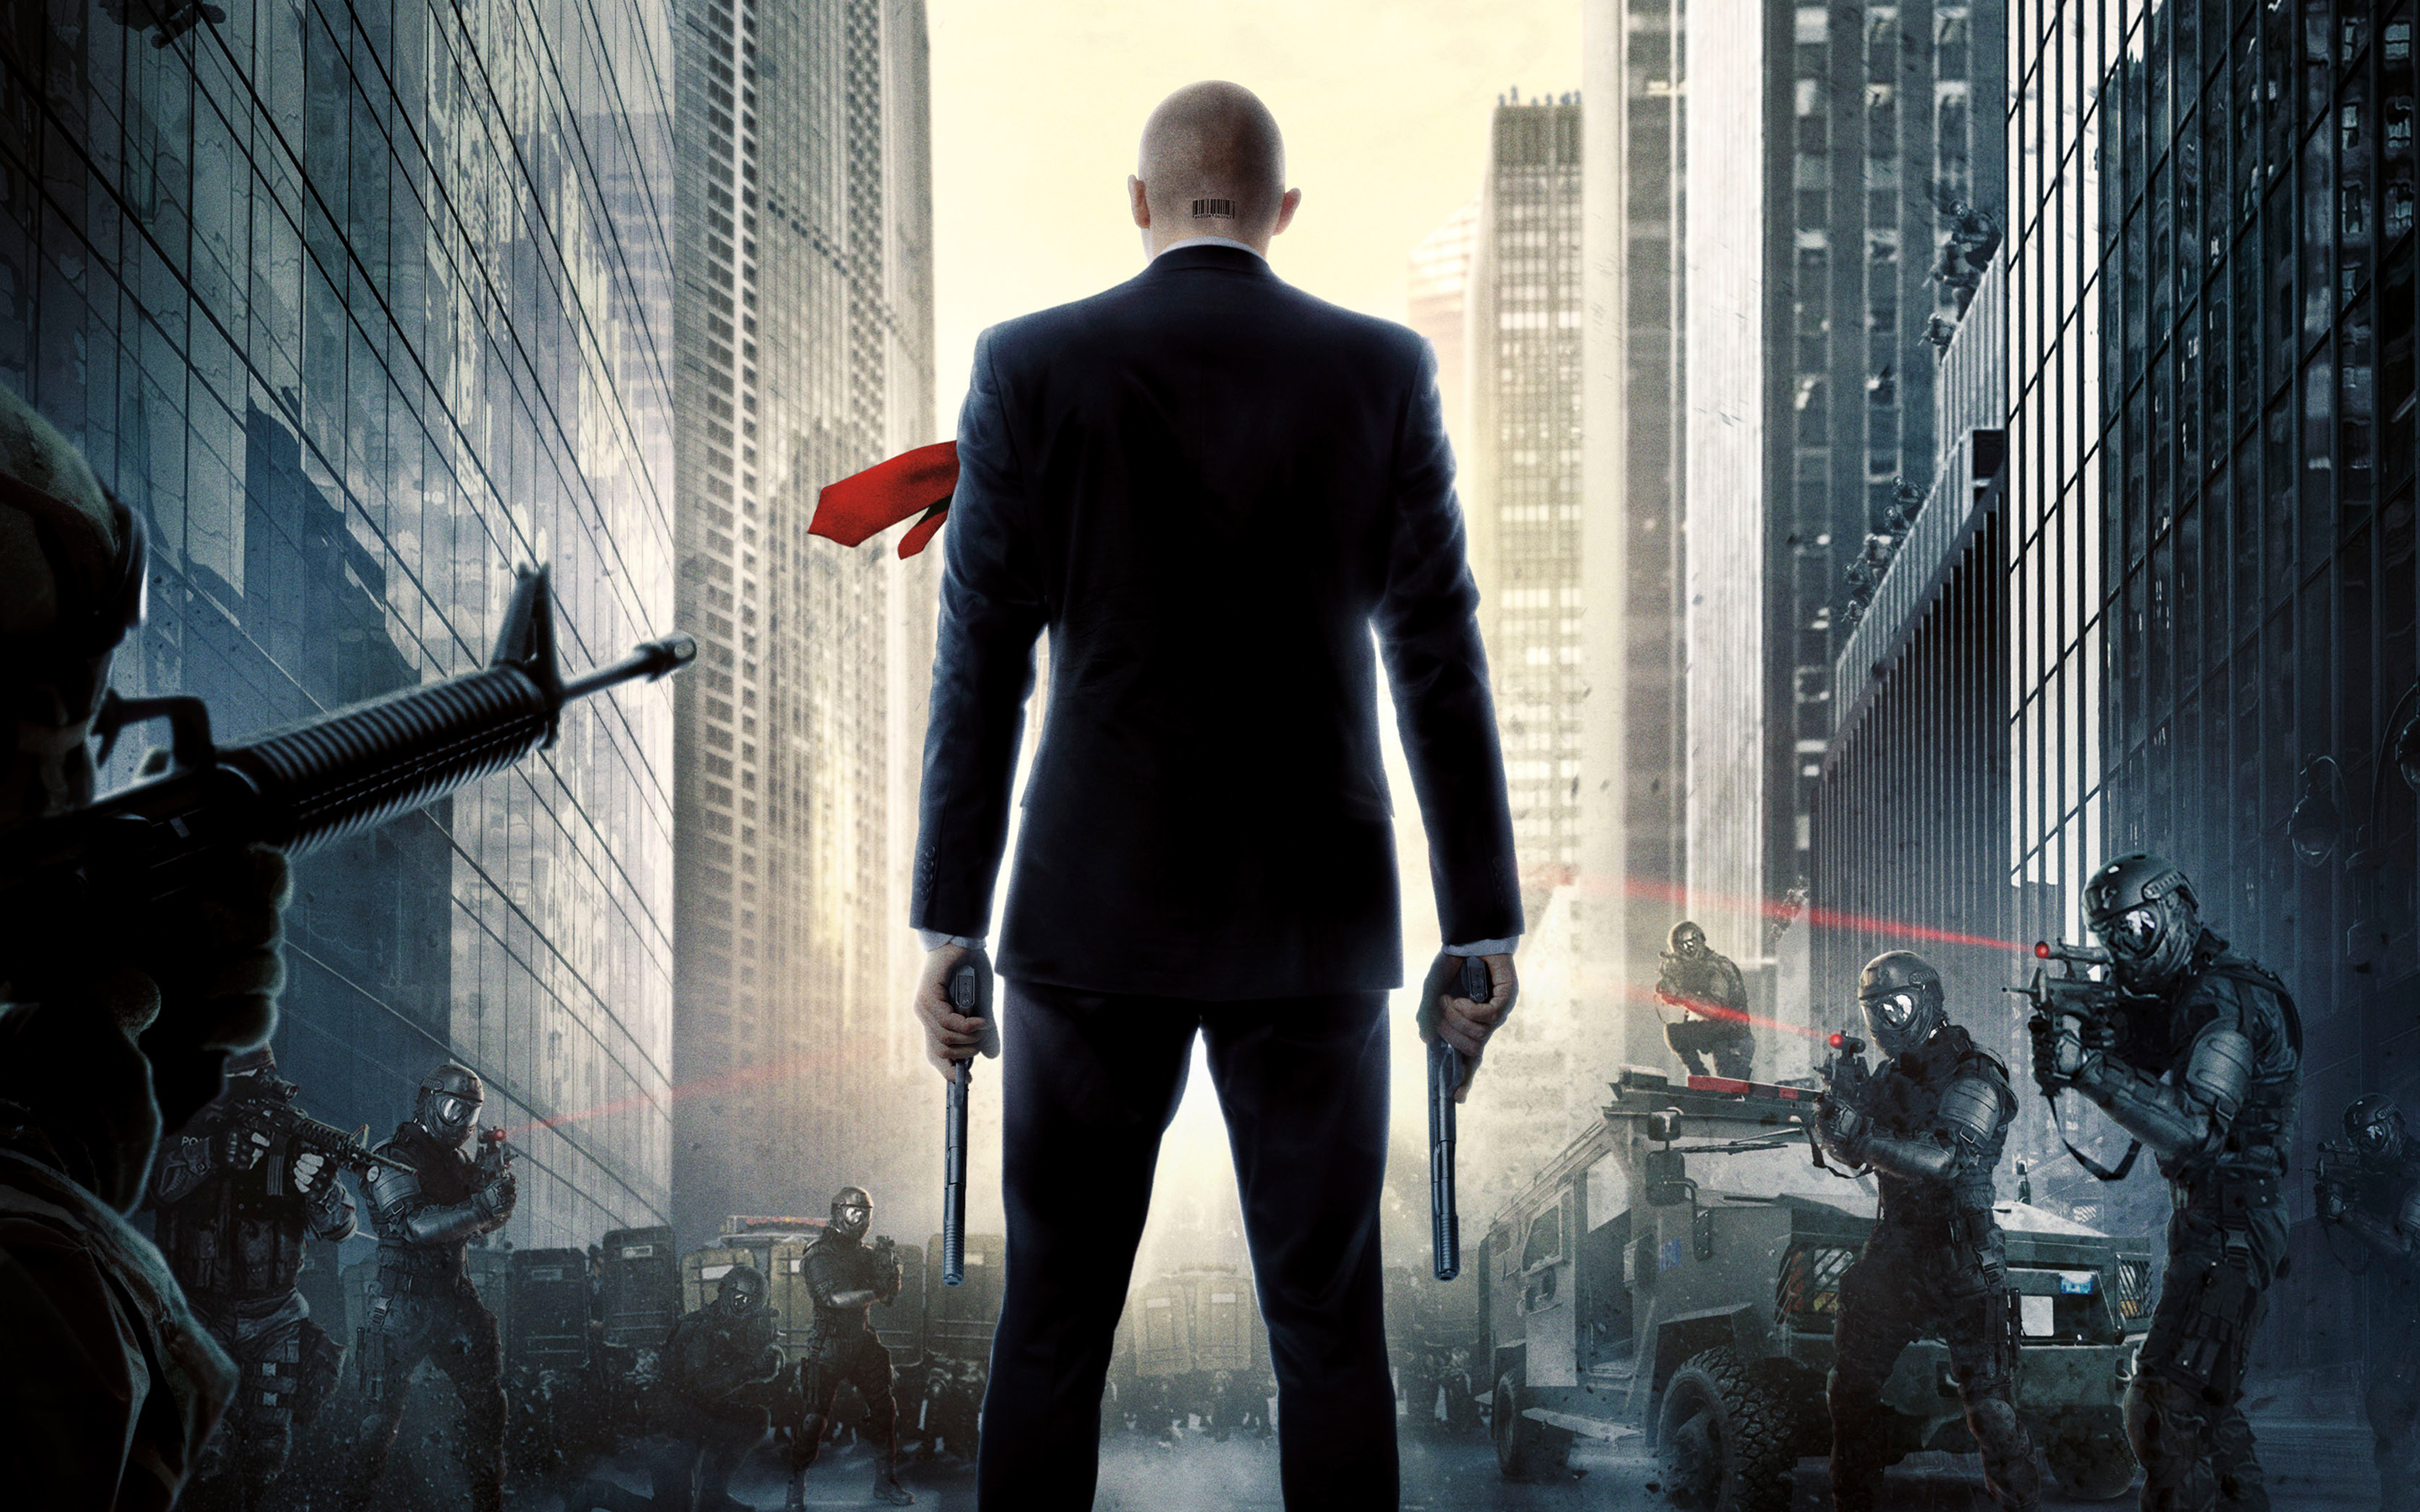 Hitman Agent Movie wallpaper. Hitman Absolution Game HD